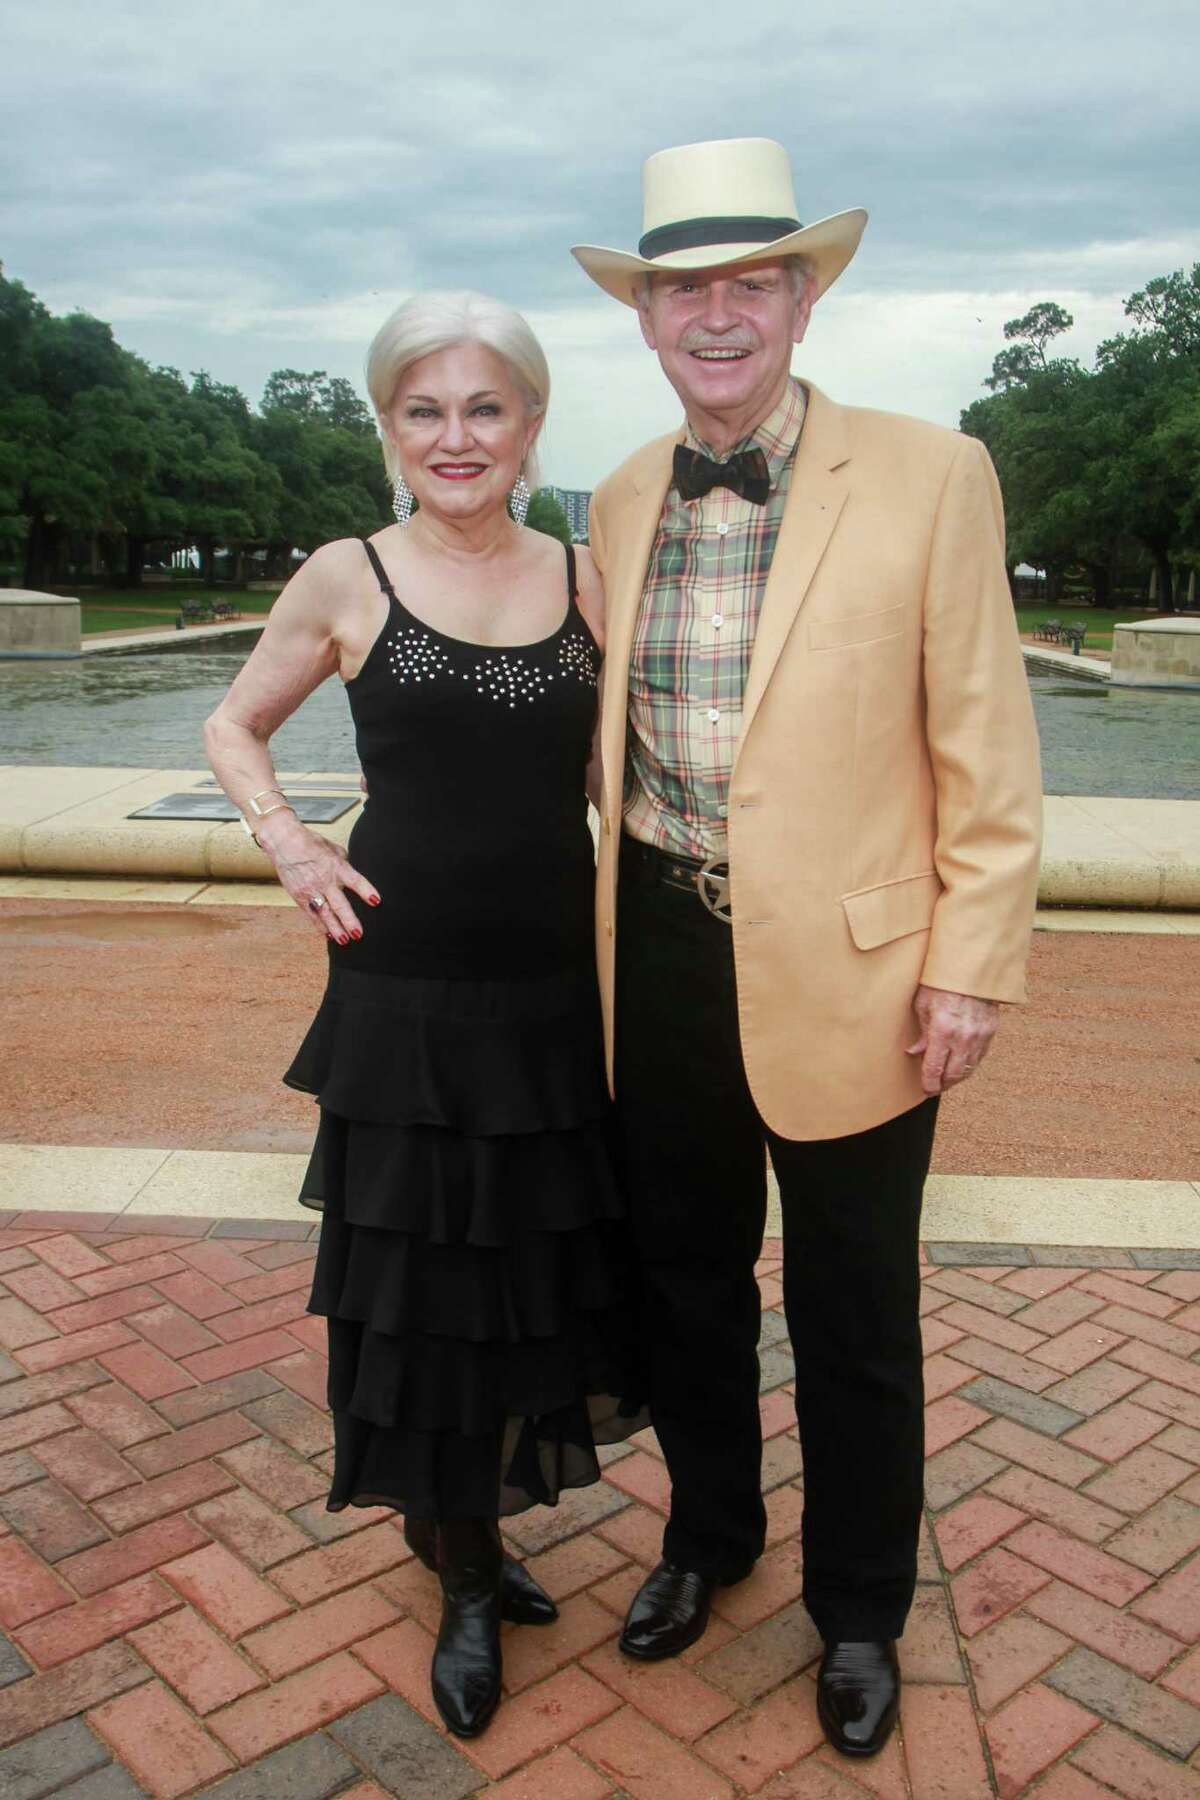 Jo and Jim Furr at Evening in the Park, hosted by the Hermann Park Conservancy, in Houston on April 30, 2021.